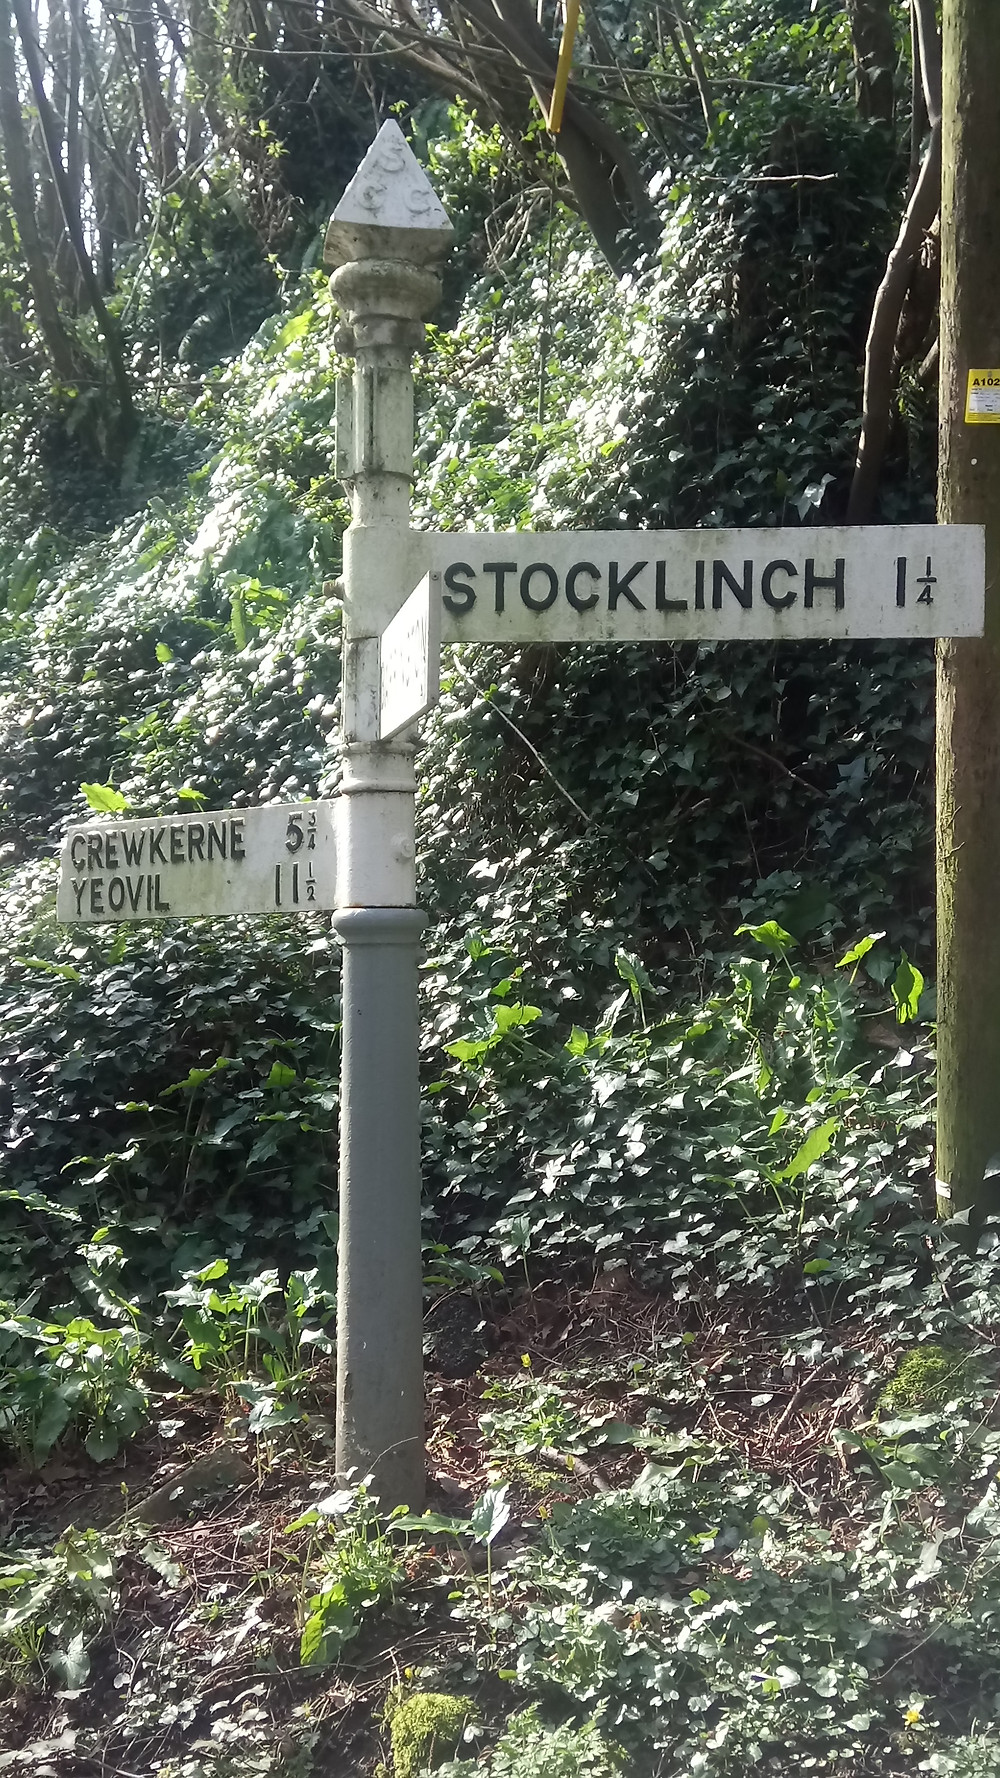 All roads lead to Stocklinch